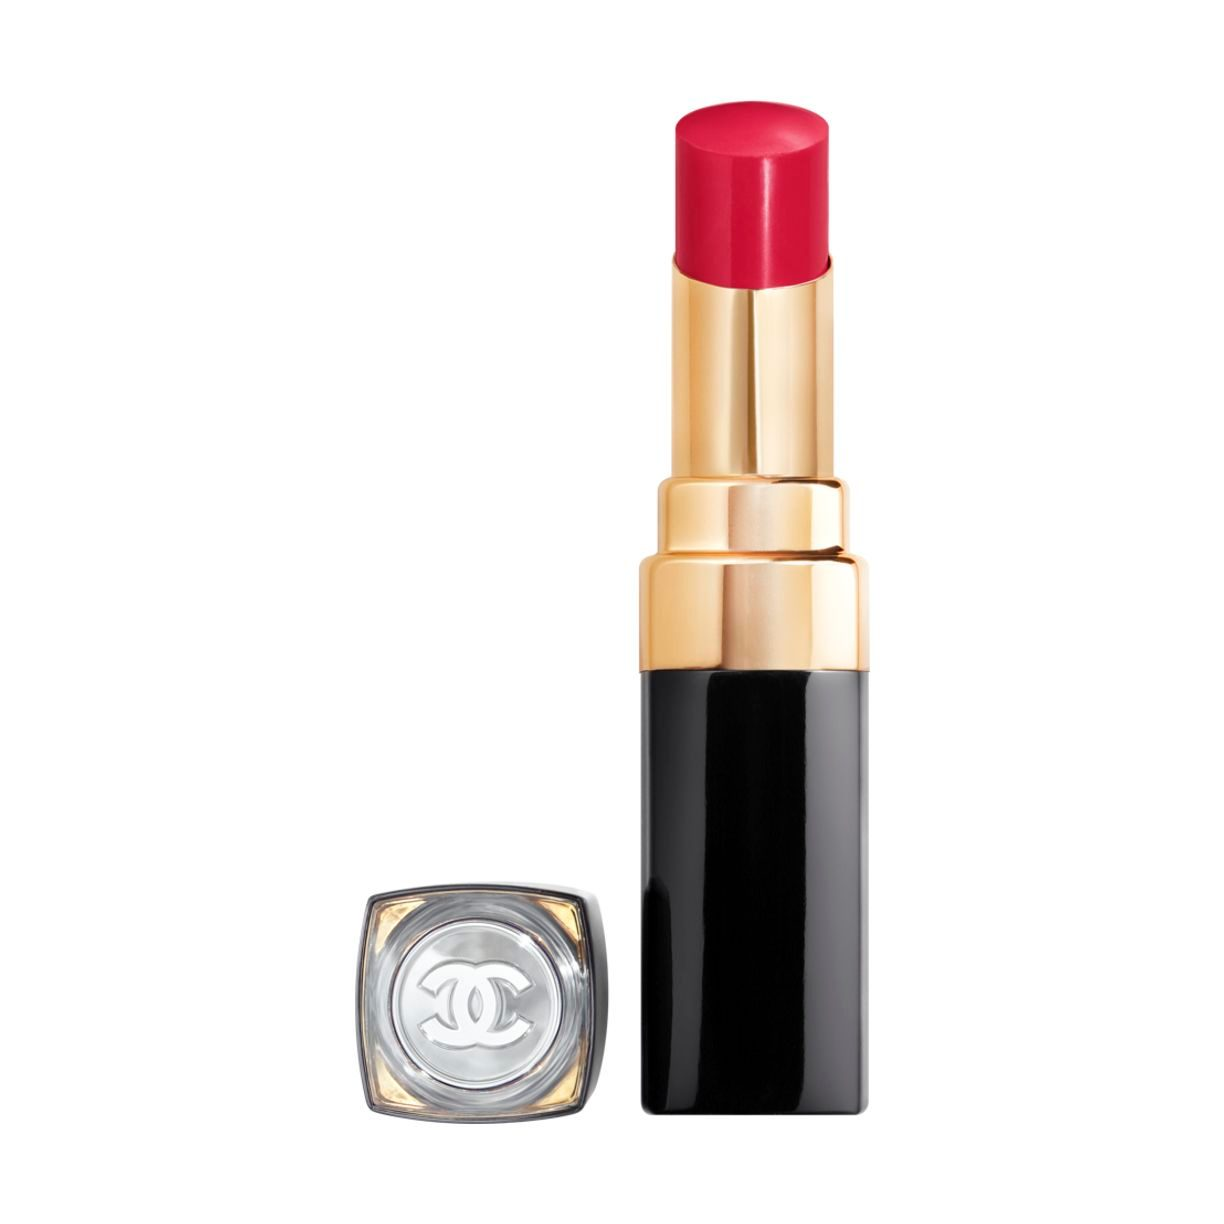 ROUGE COCO FLASH COLORE, BRILLANTEZZA E INTENSITÀ IN UN FLASH 91 - BOHÈME